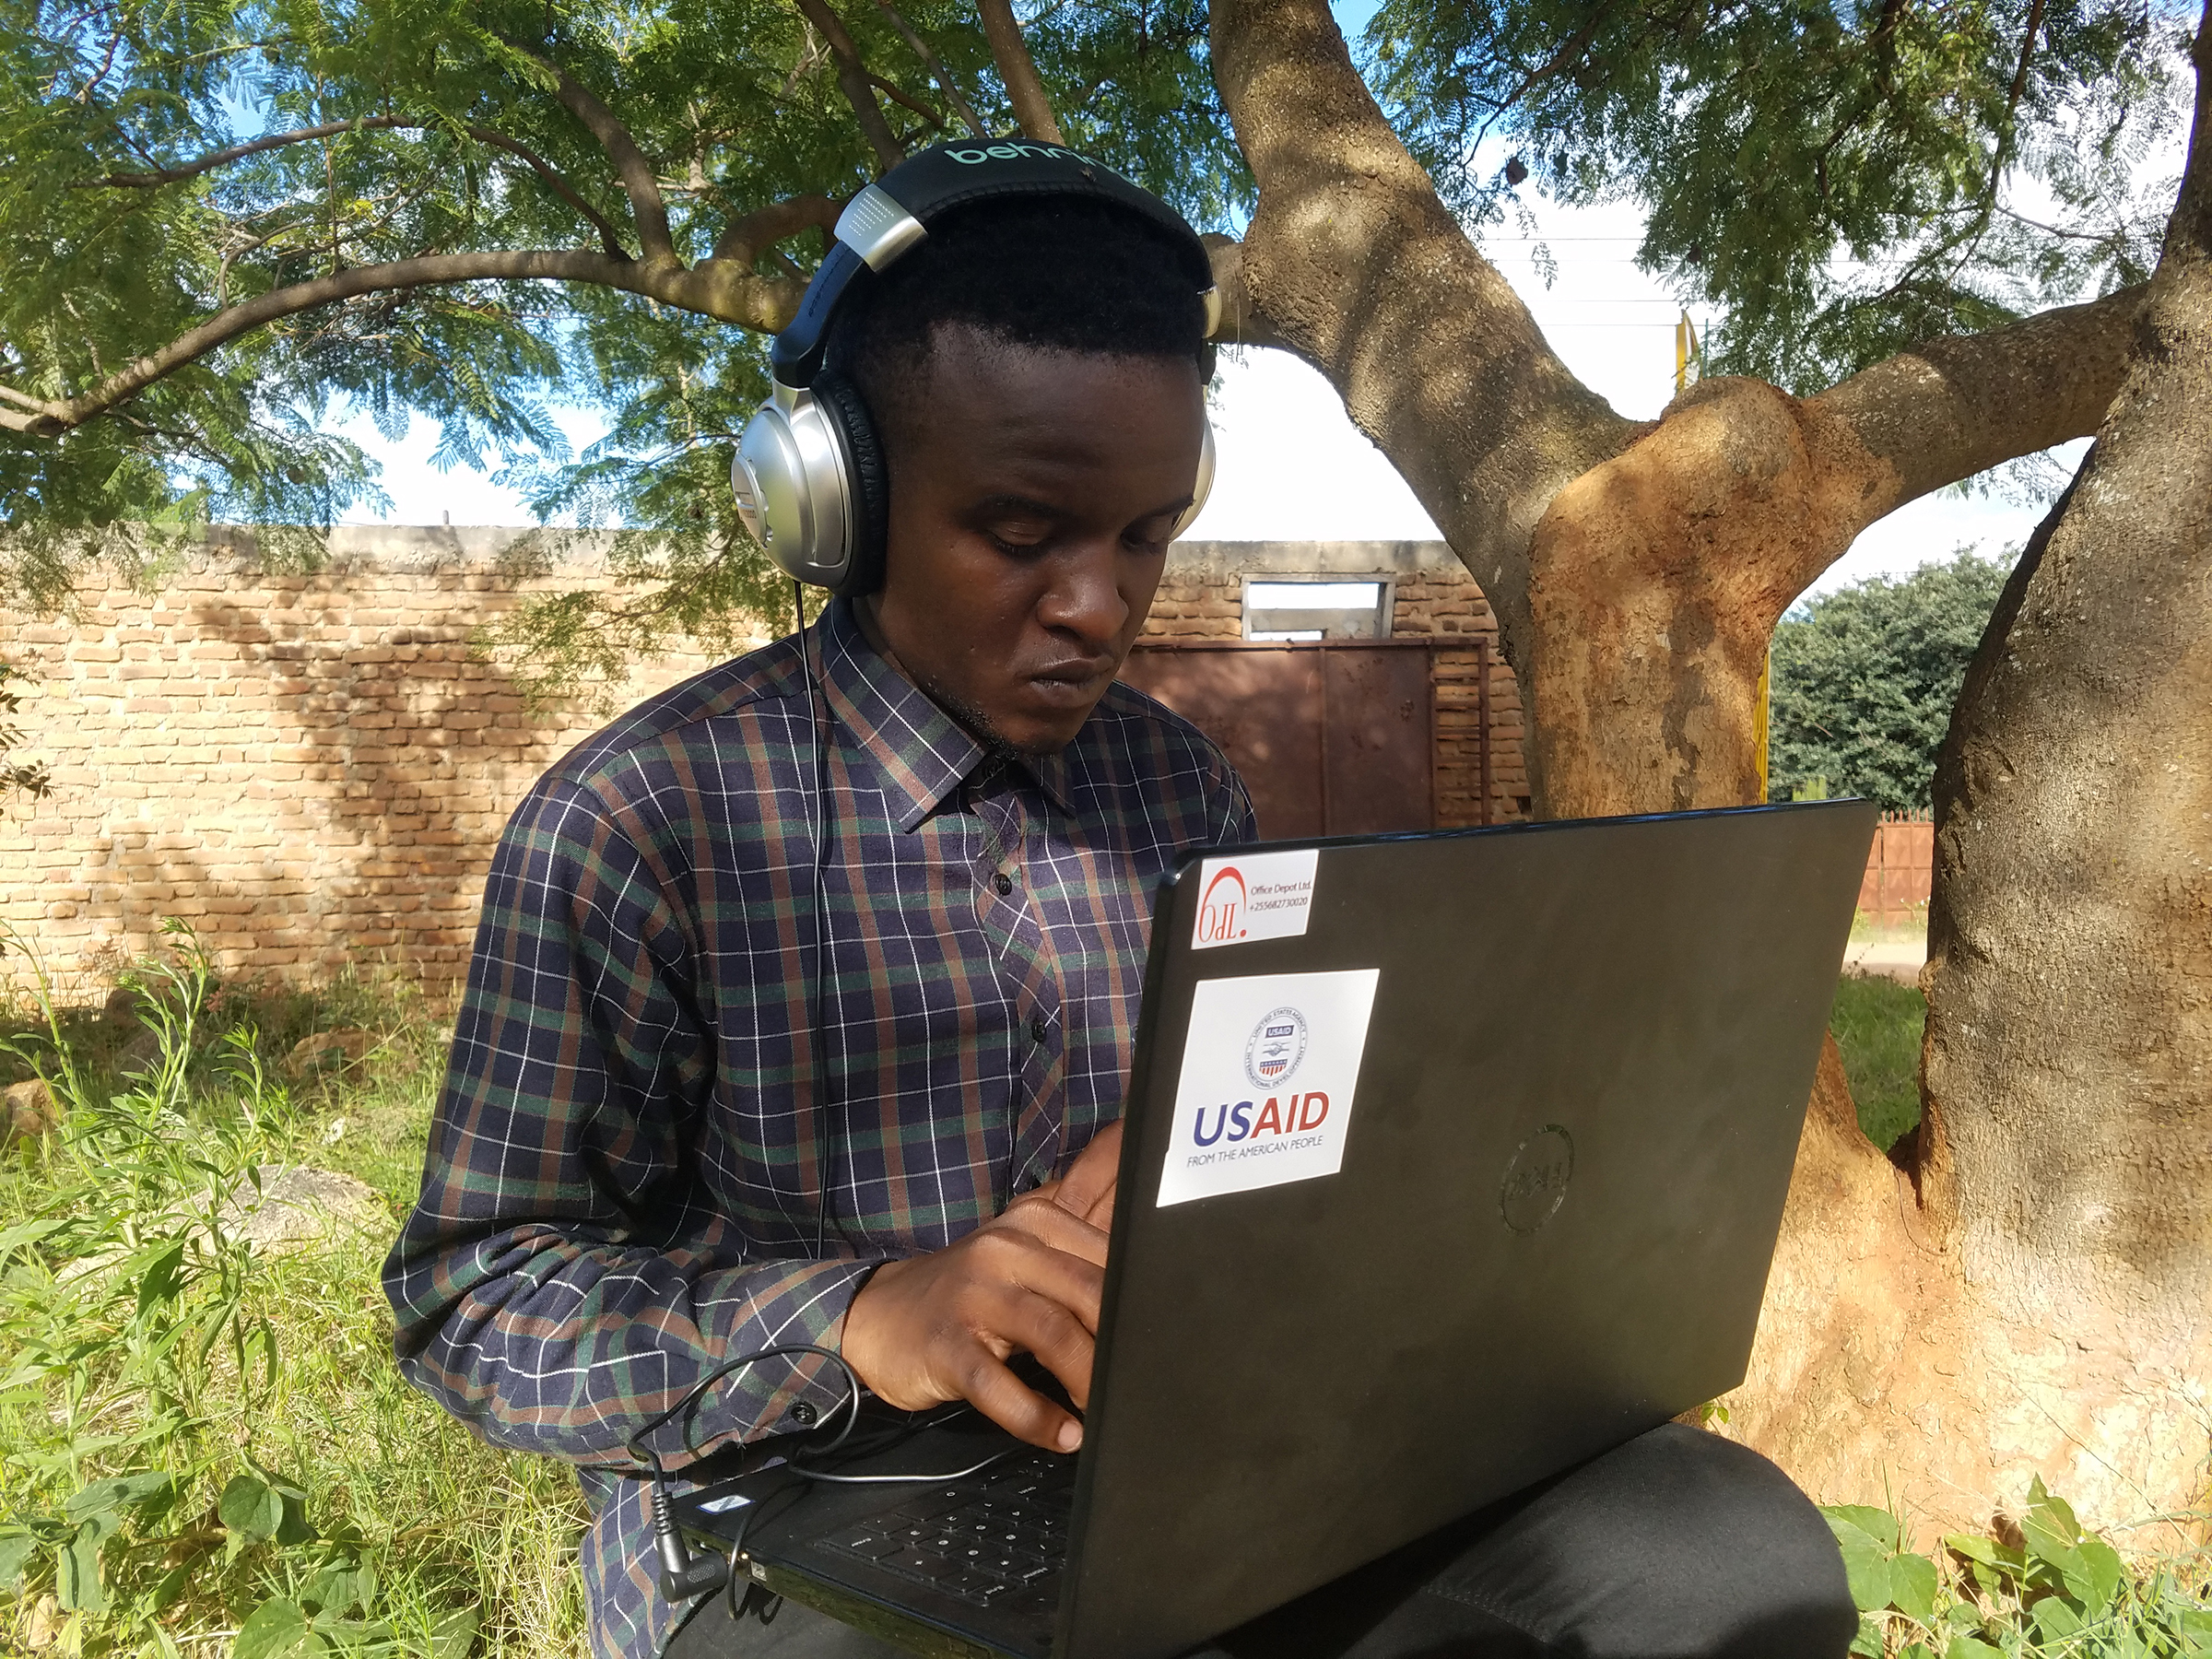 A man wearing headphones works on a laptop computer